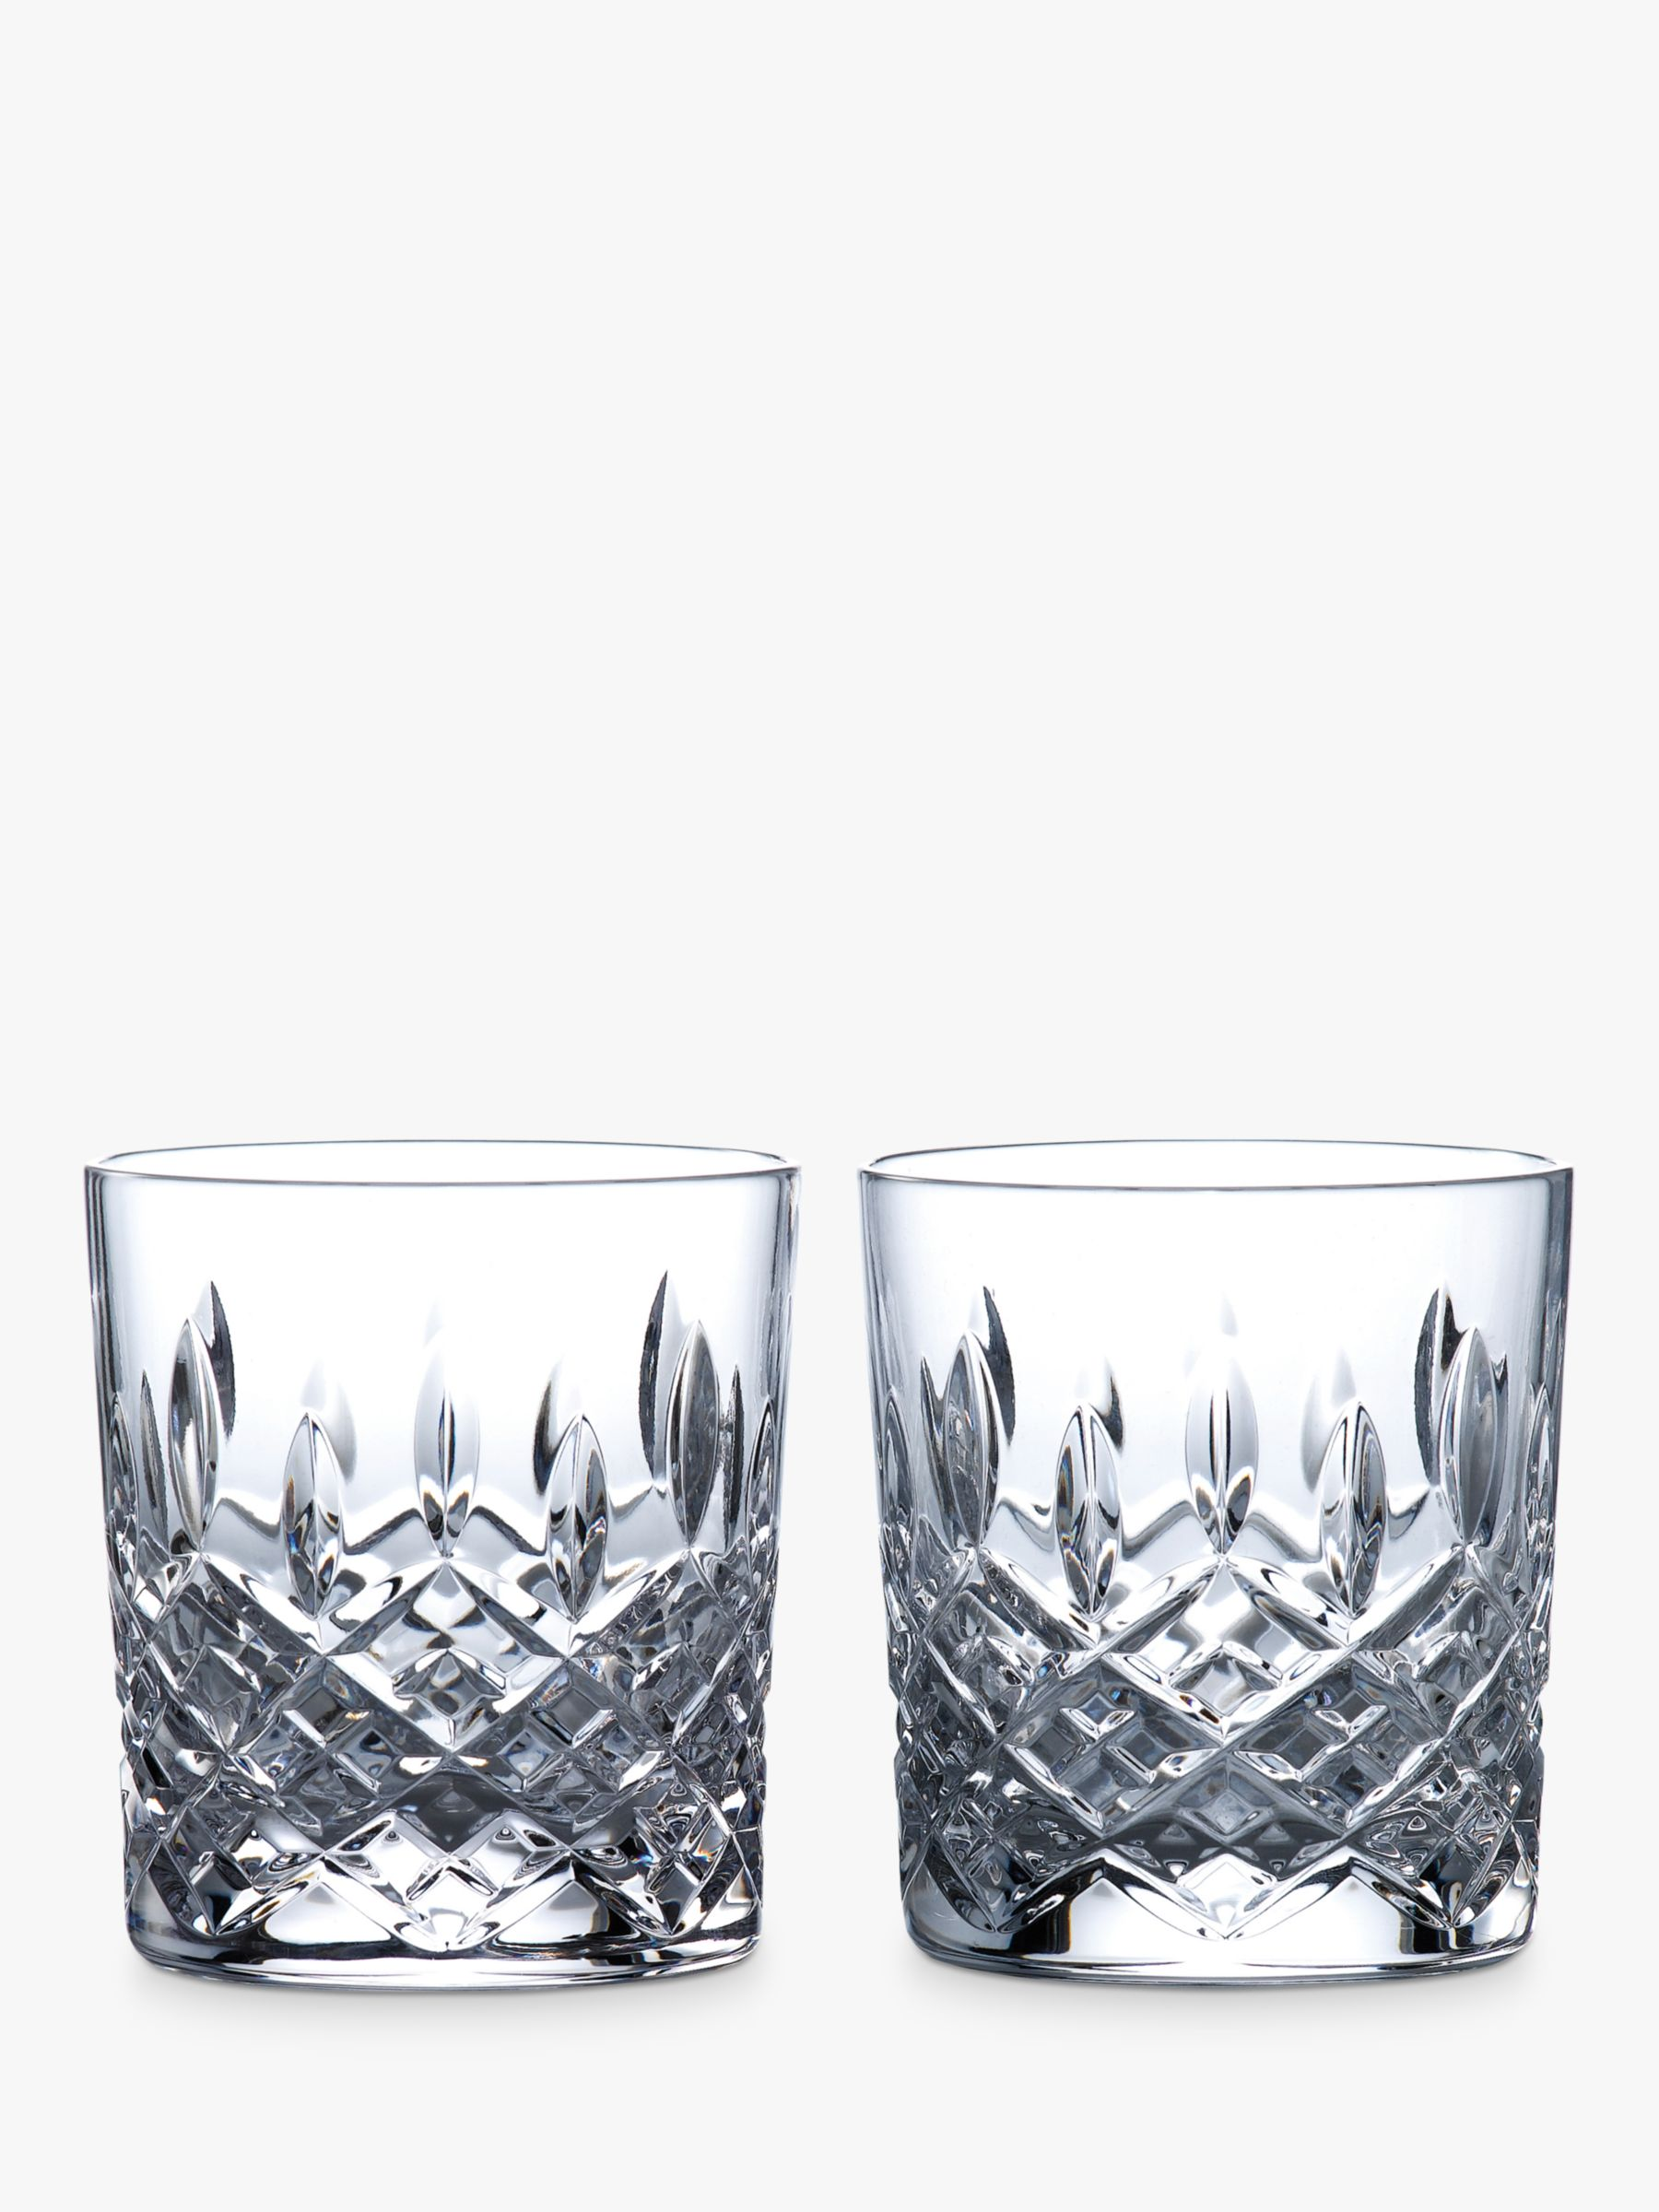 Royal Doulton Royal Doulton R&D Collection Highclere Crystal Cut Tumblers, 290ml, Set of 2